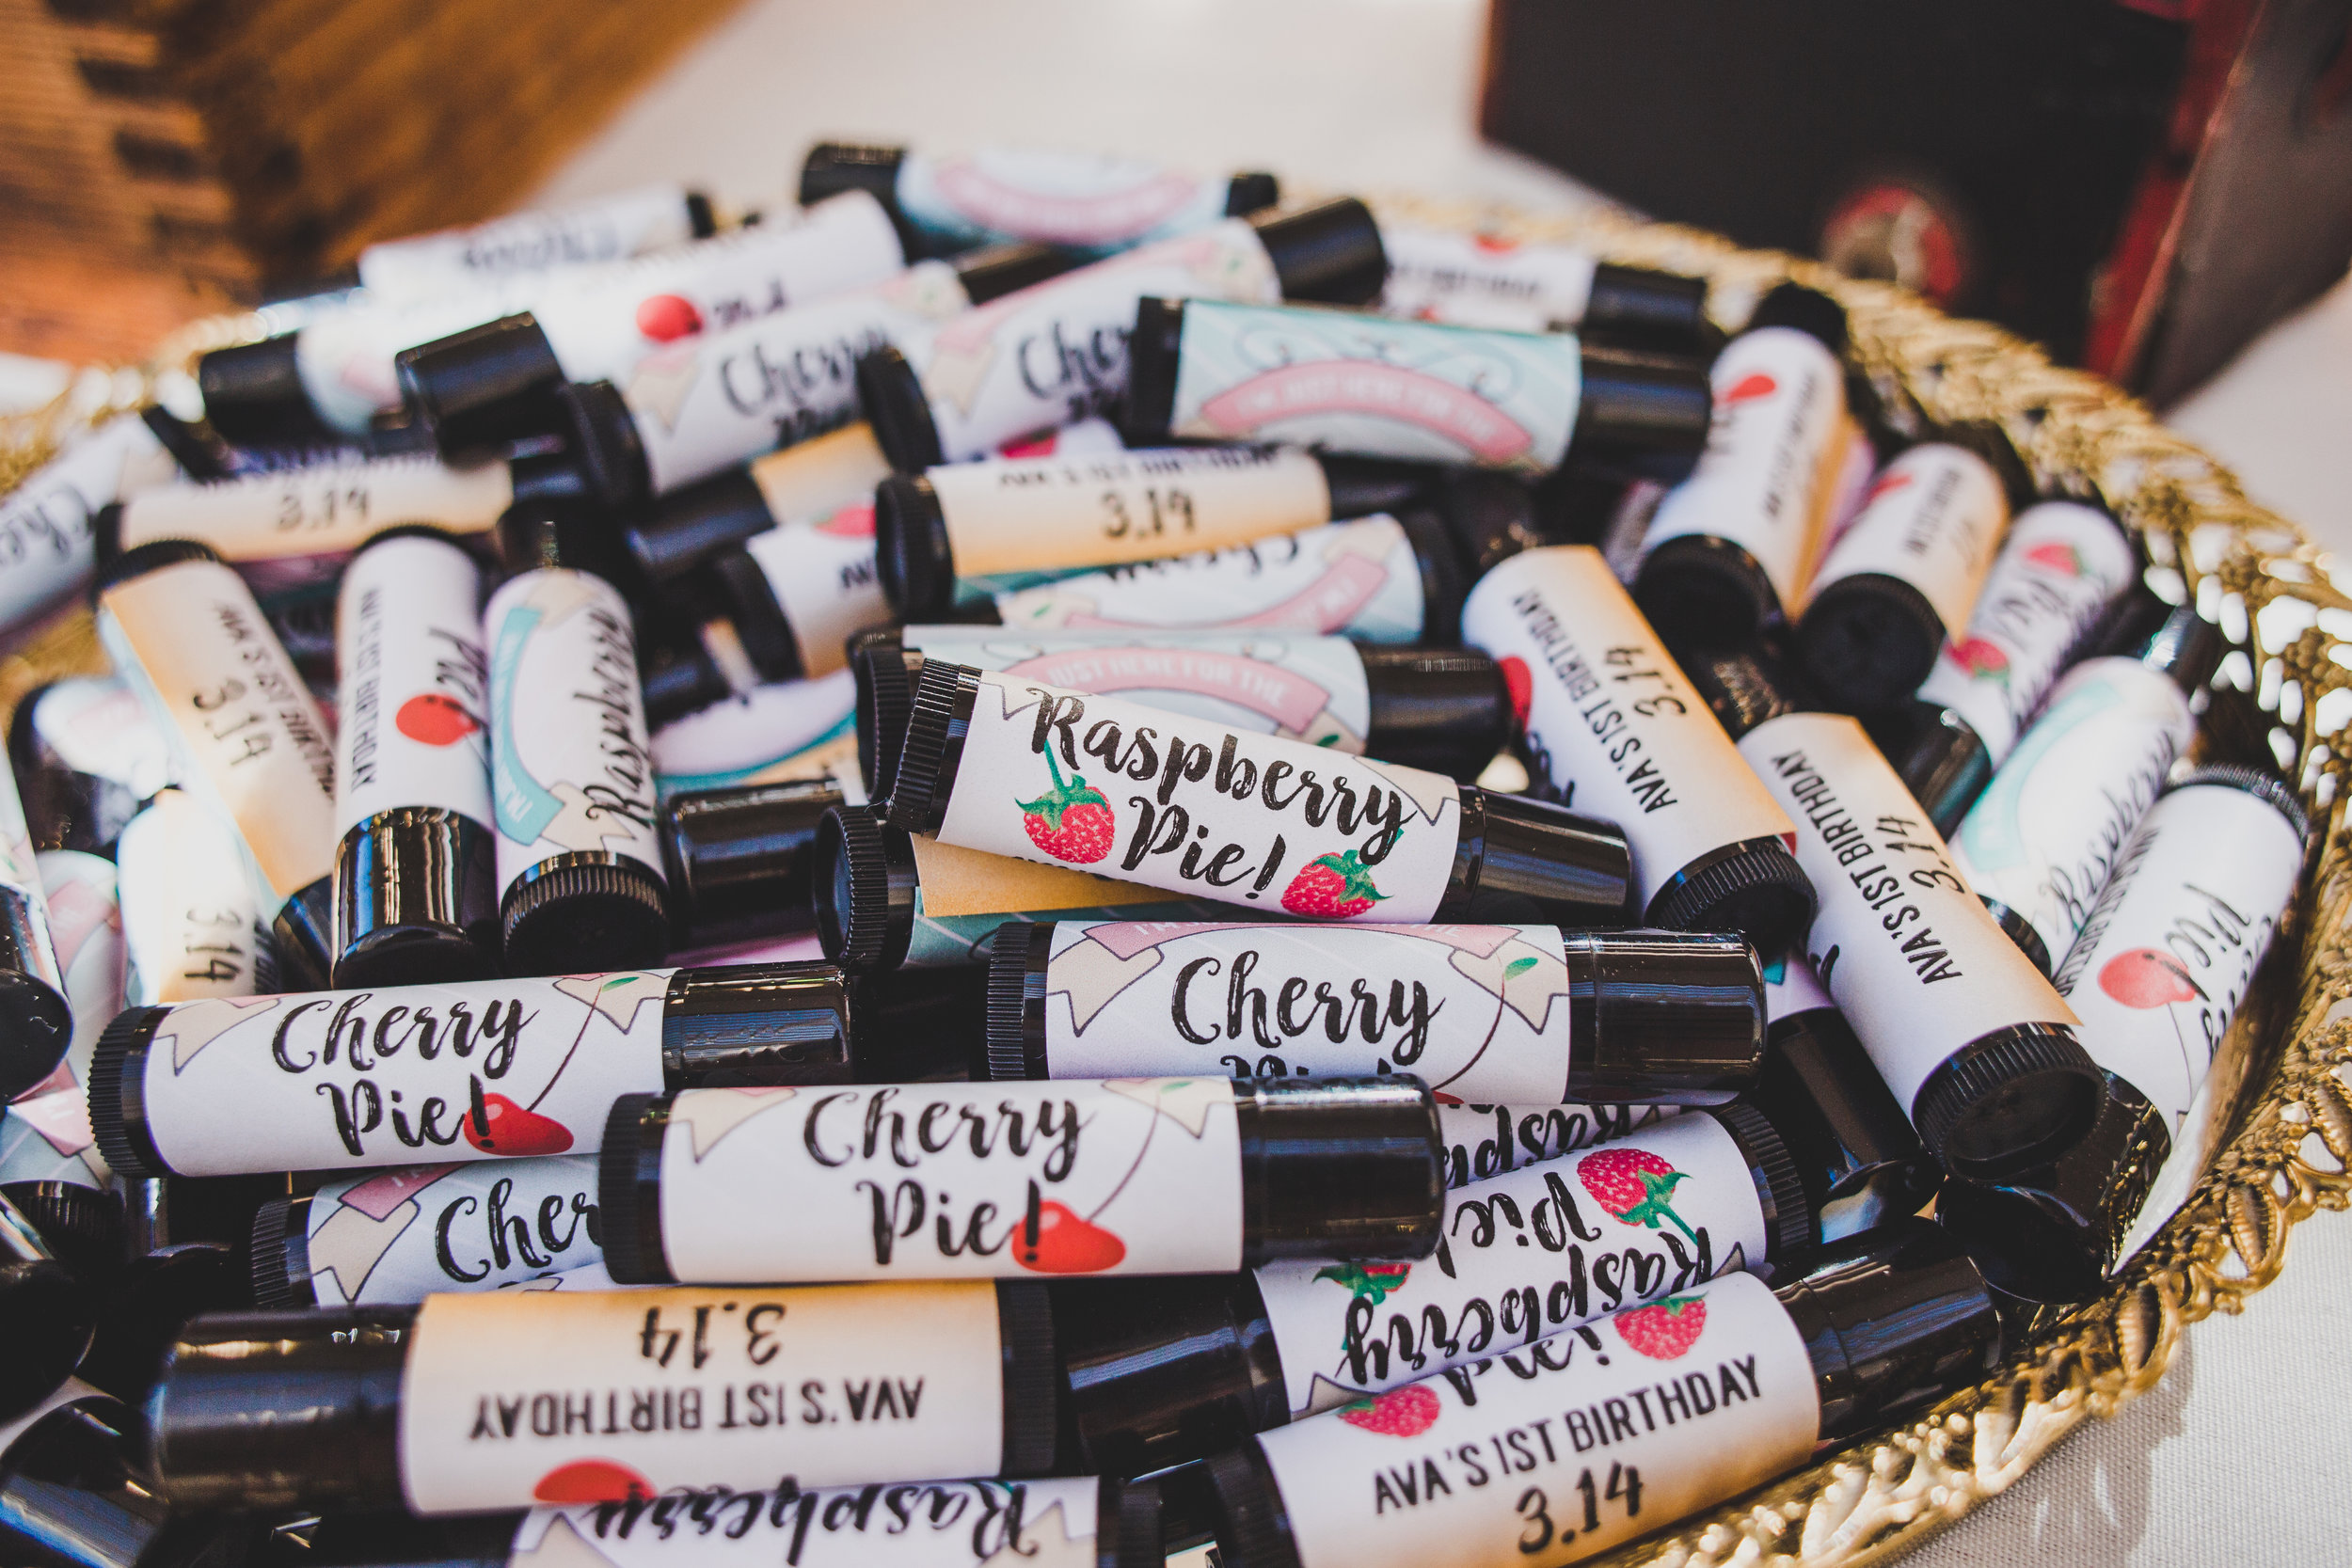 Personalized Chapstick First Birthday Favors - A Vintage Chic Pi Day Themed 1st Birthday Party